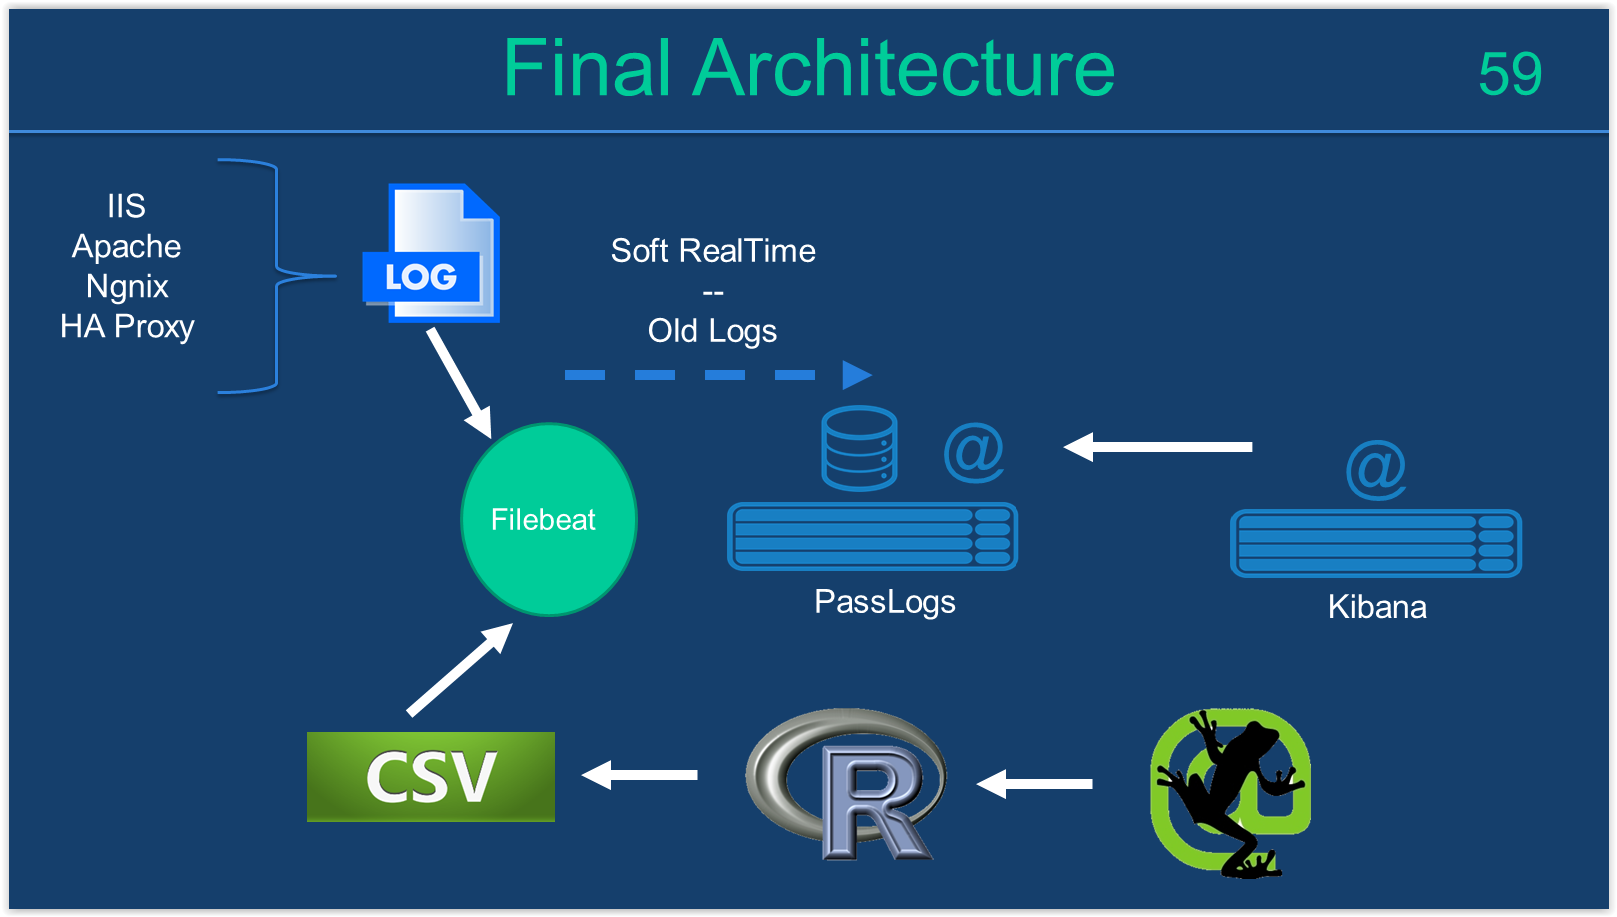 paas logs architecture